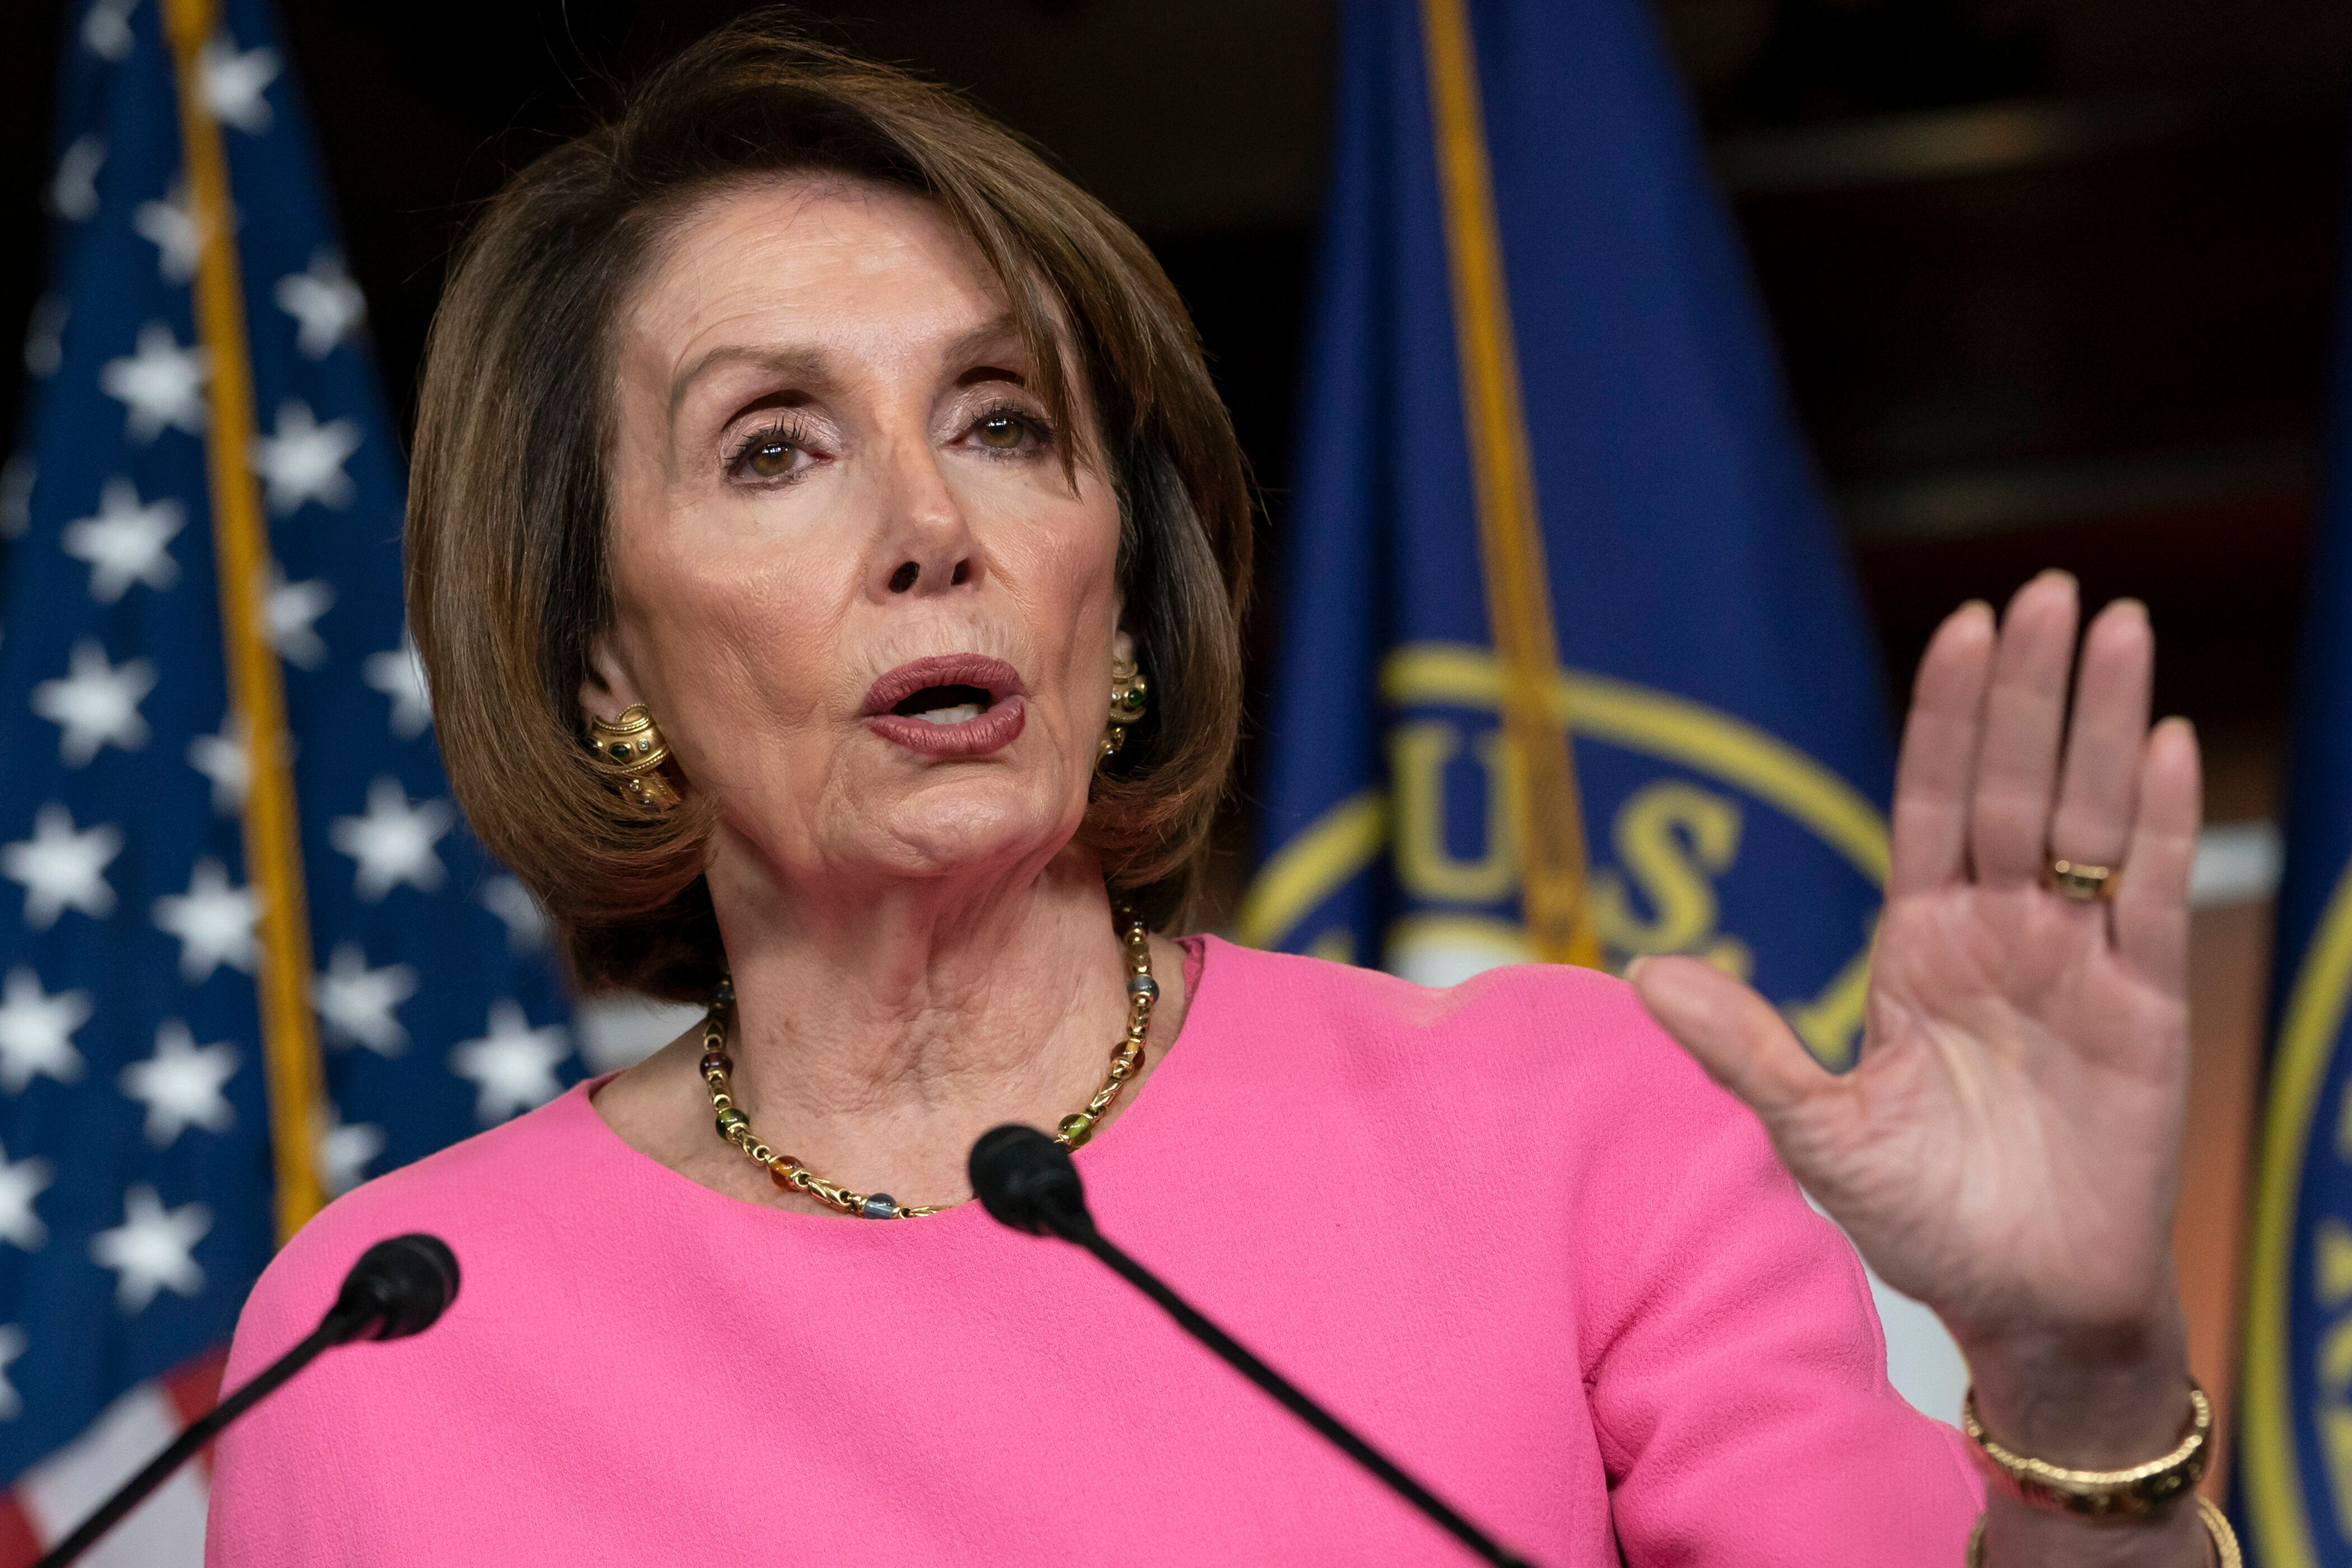 Nancy Pelosi: Trump Needs An Intervention 'For The Good Of The